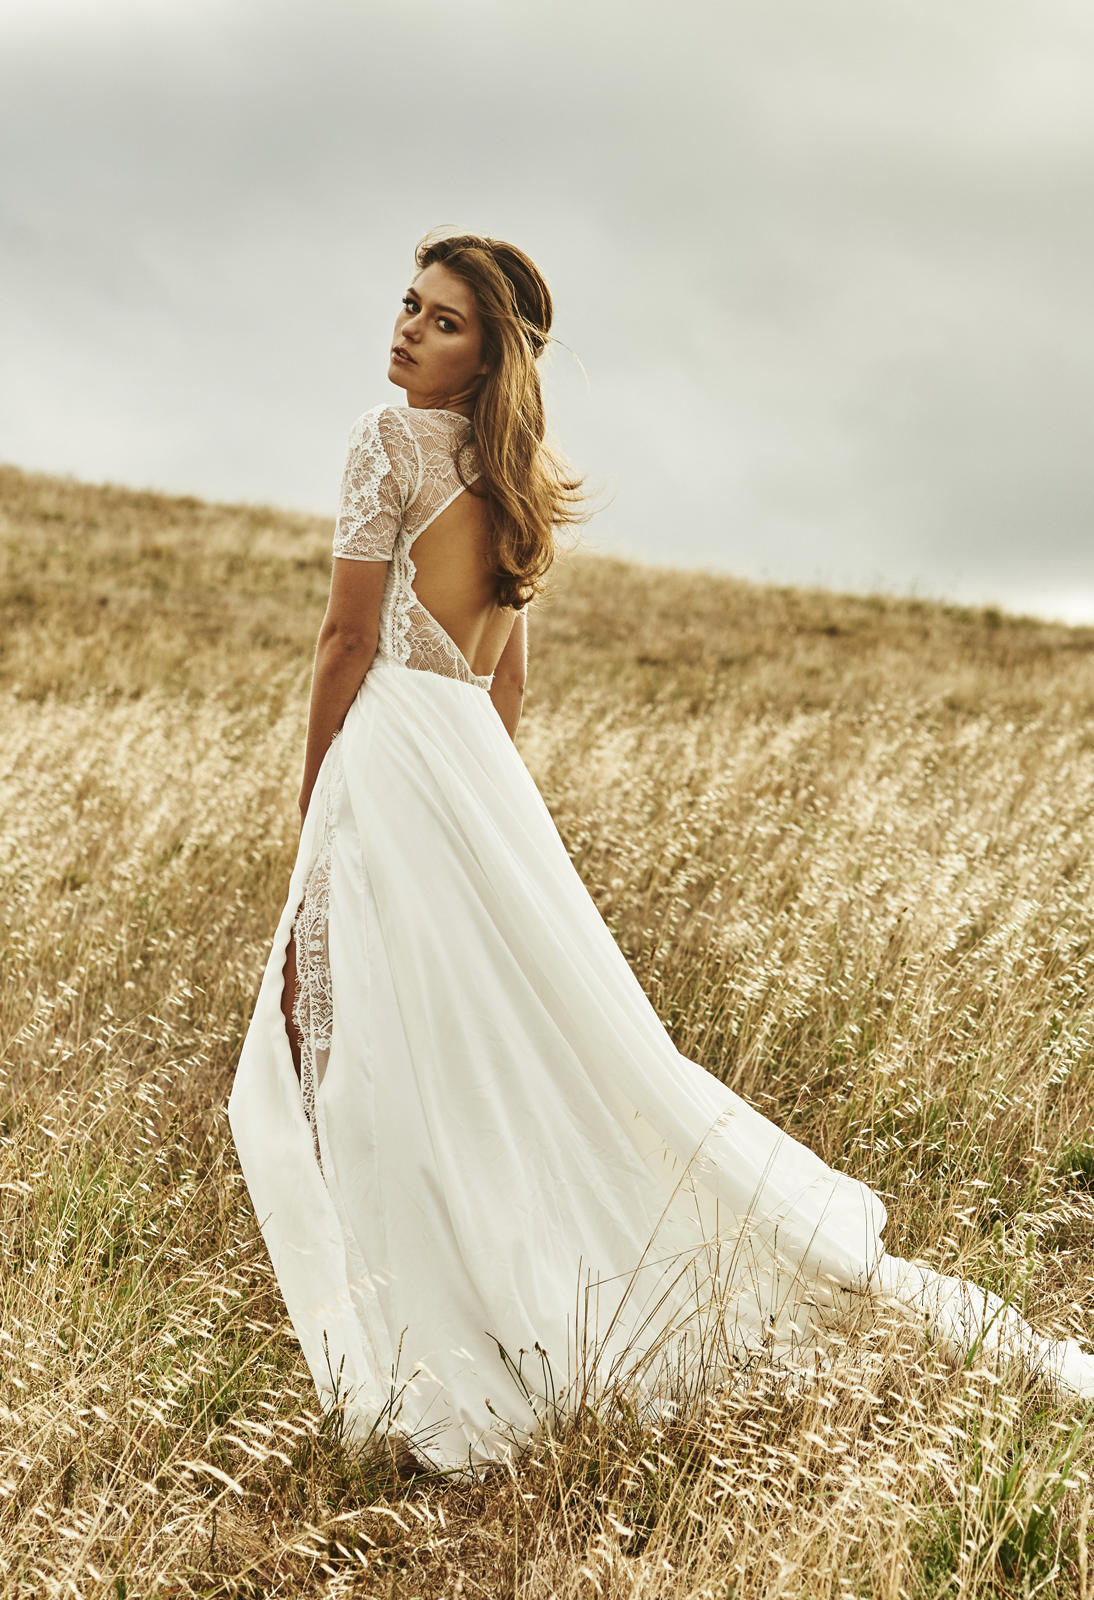 Grace Loves Lace Wedding Dresses - Rustic Wedding Chic - photo#16